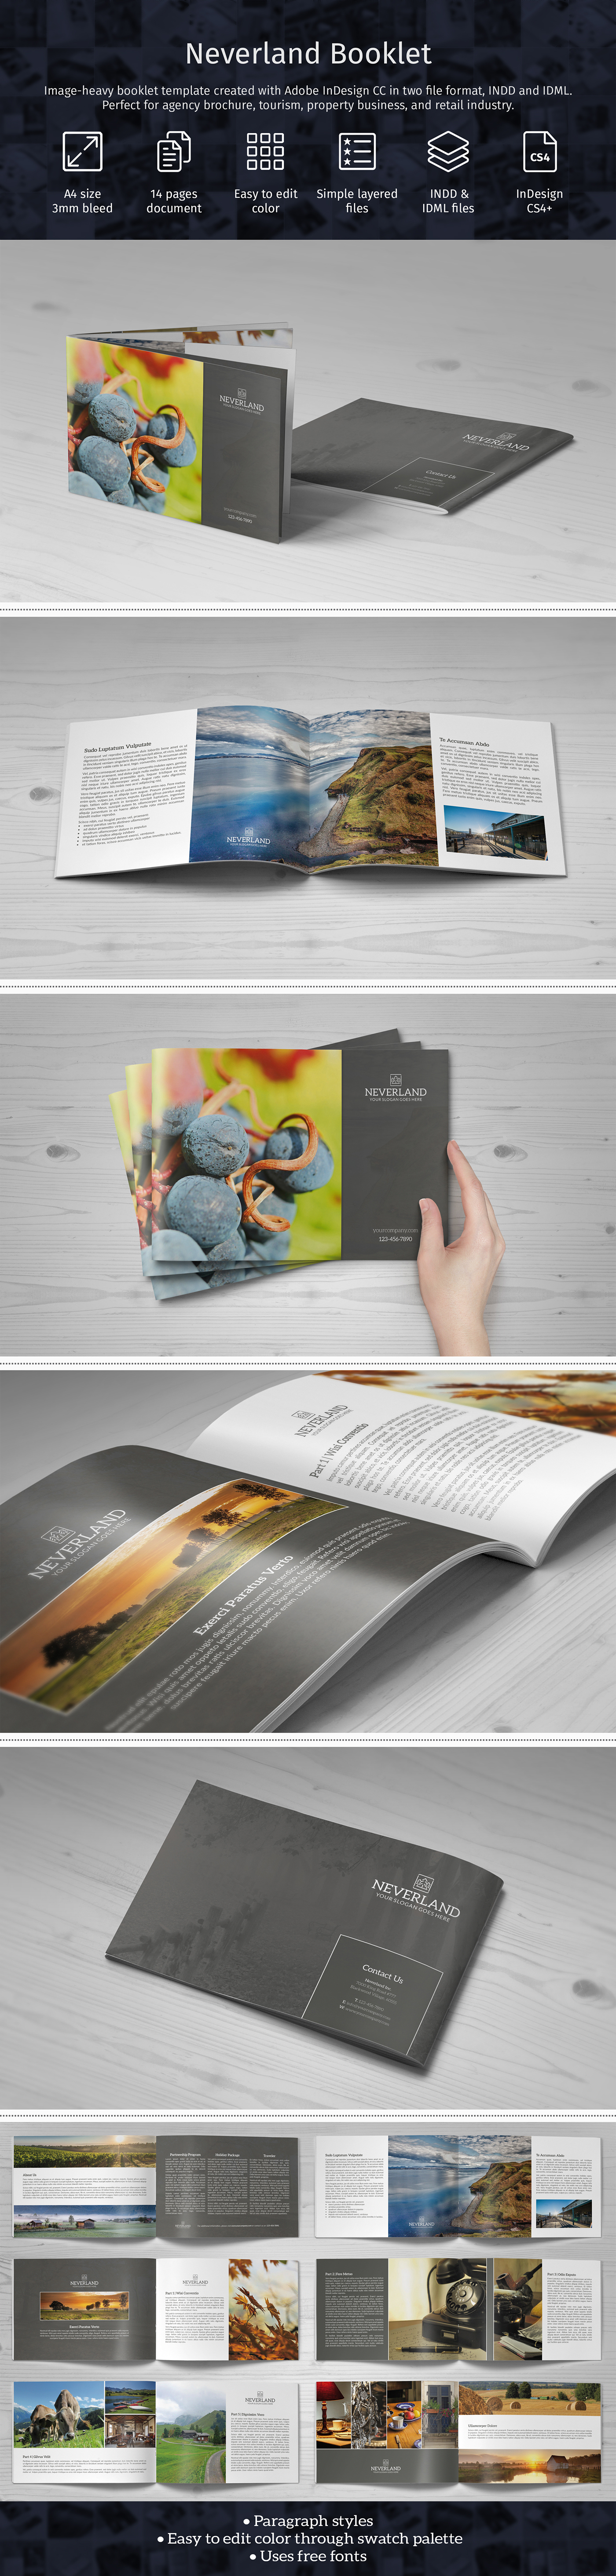 image heavy booklet on behance